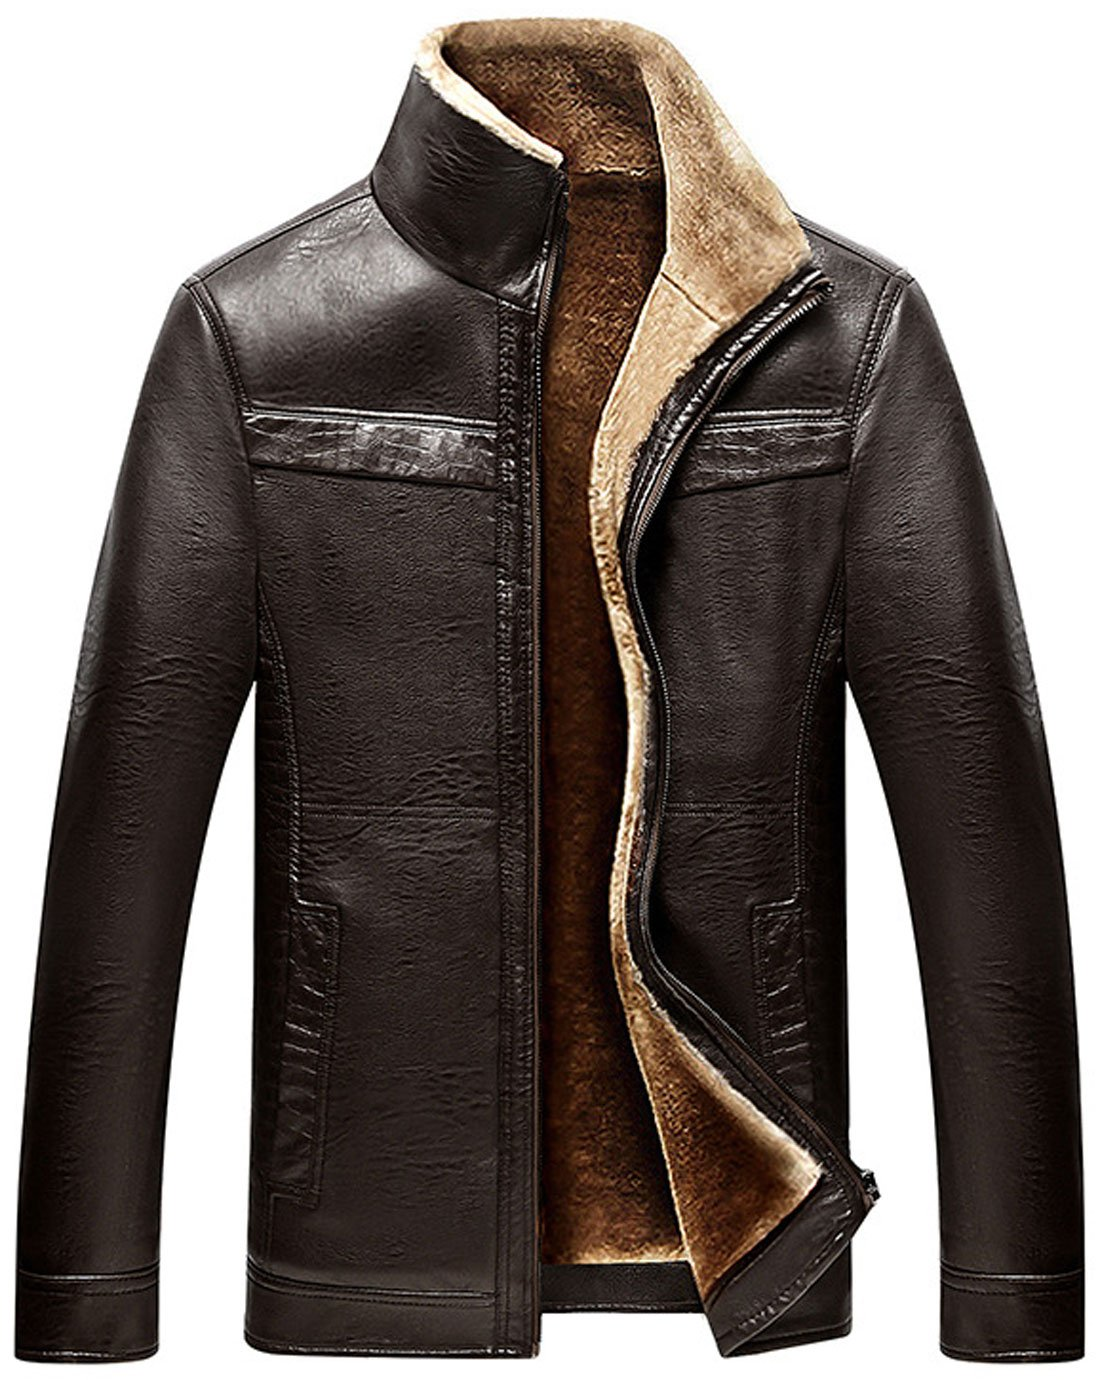 Chouyatou Men's Winter Full Zipper Thick Sherpa Lined Faux Leather Jacket (Coffee, X-Large)